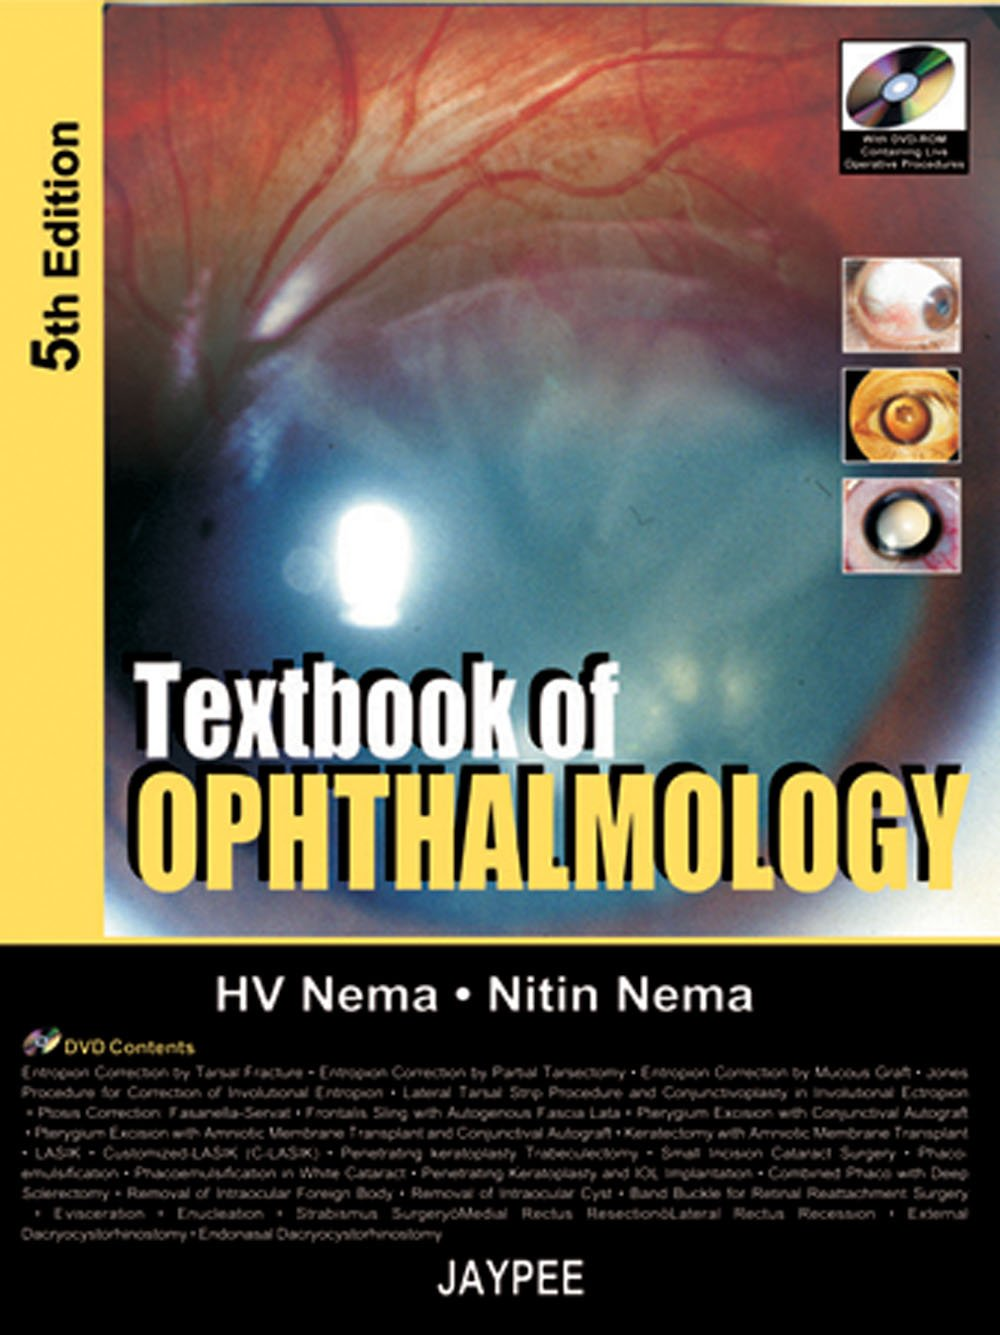 Textbook of Ophthalmology, 5th Edition